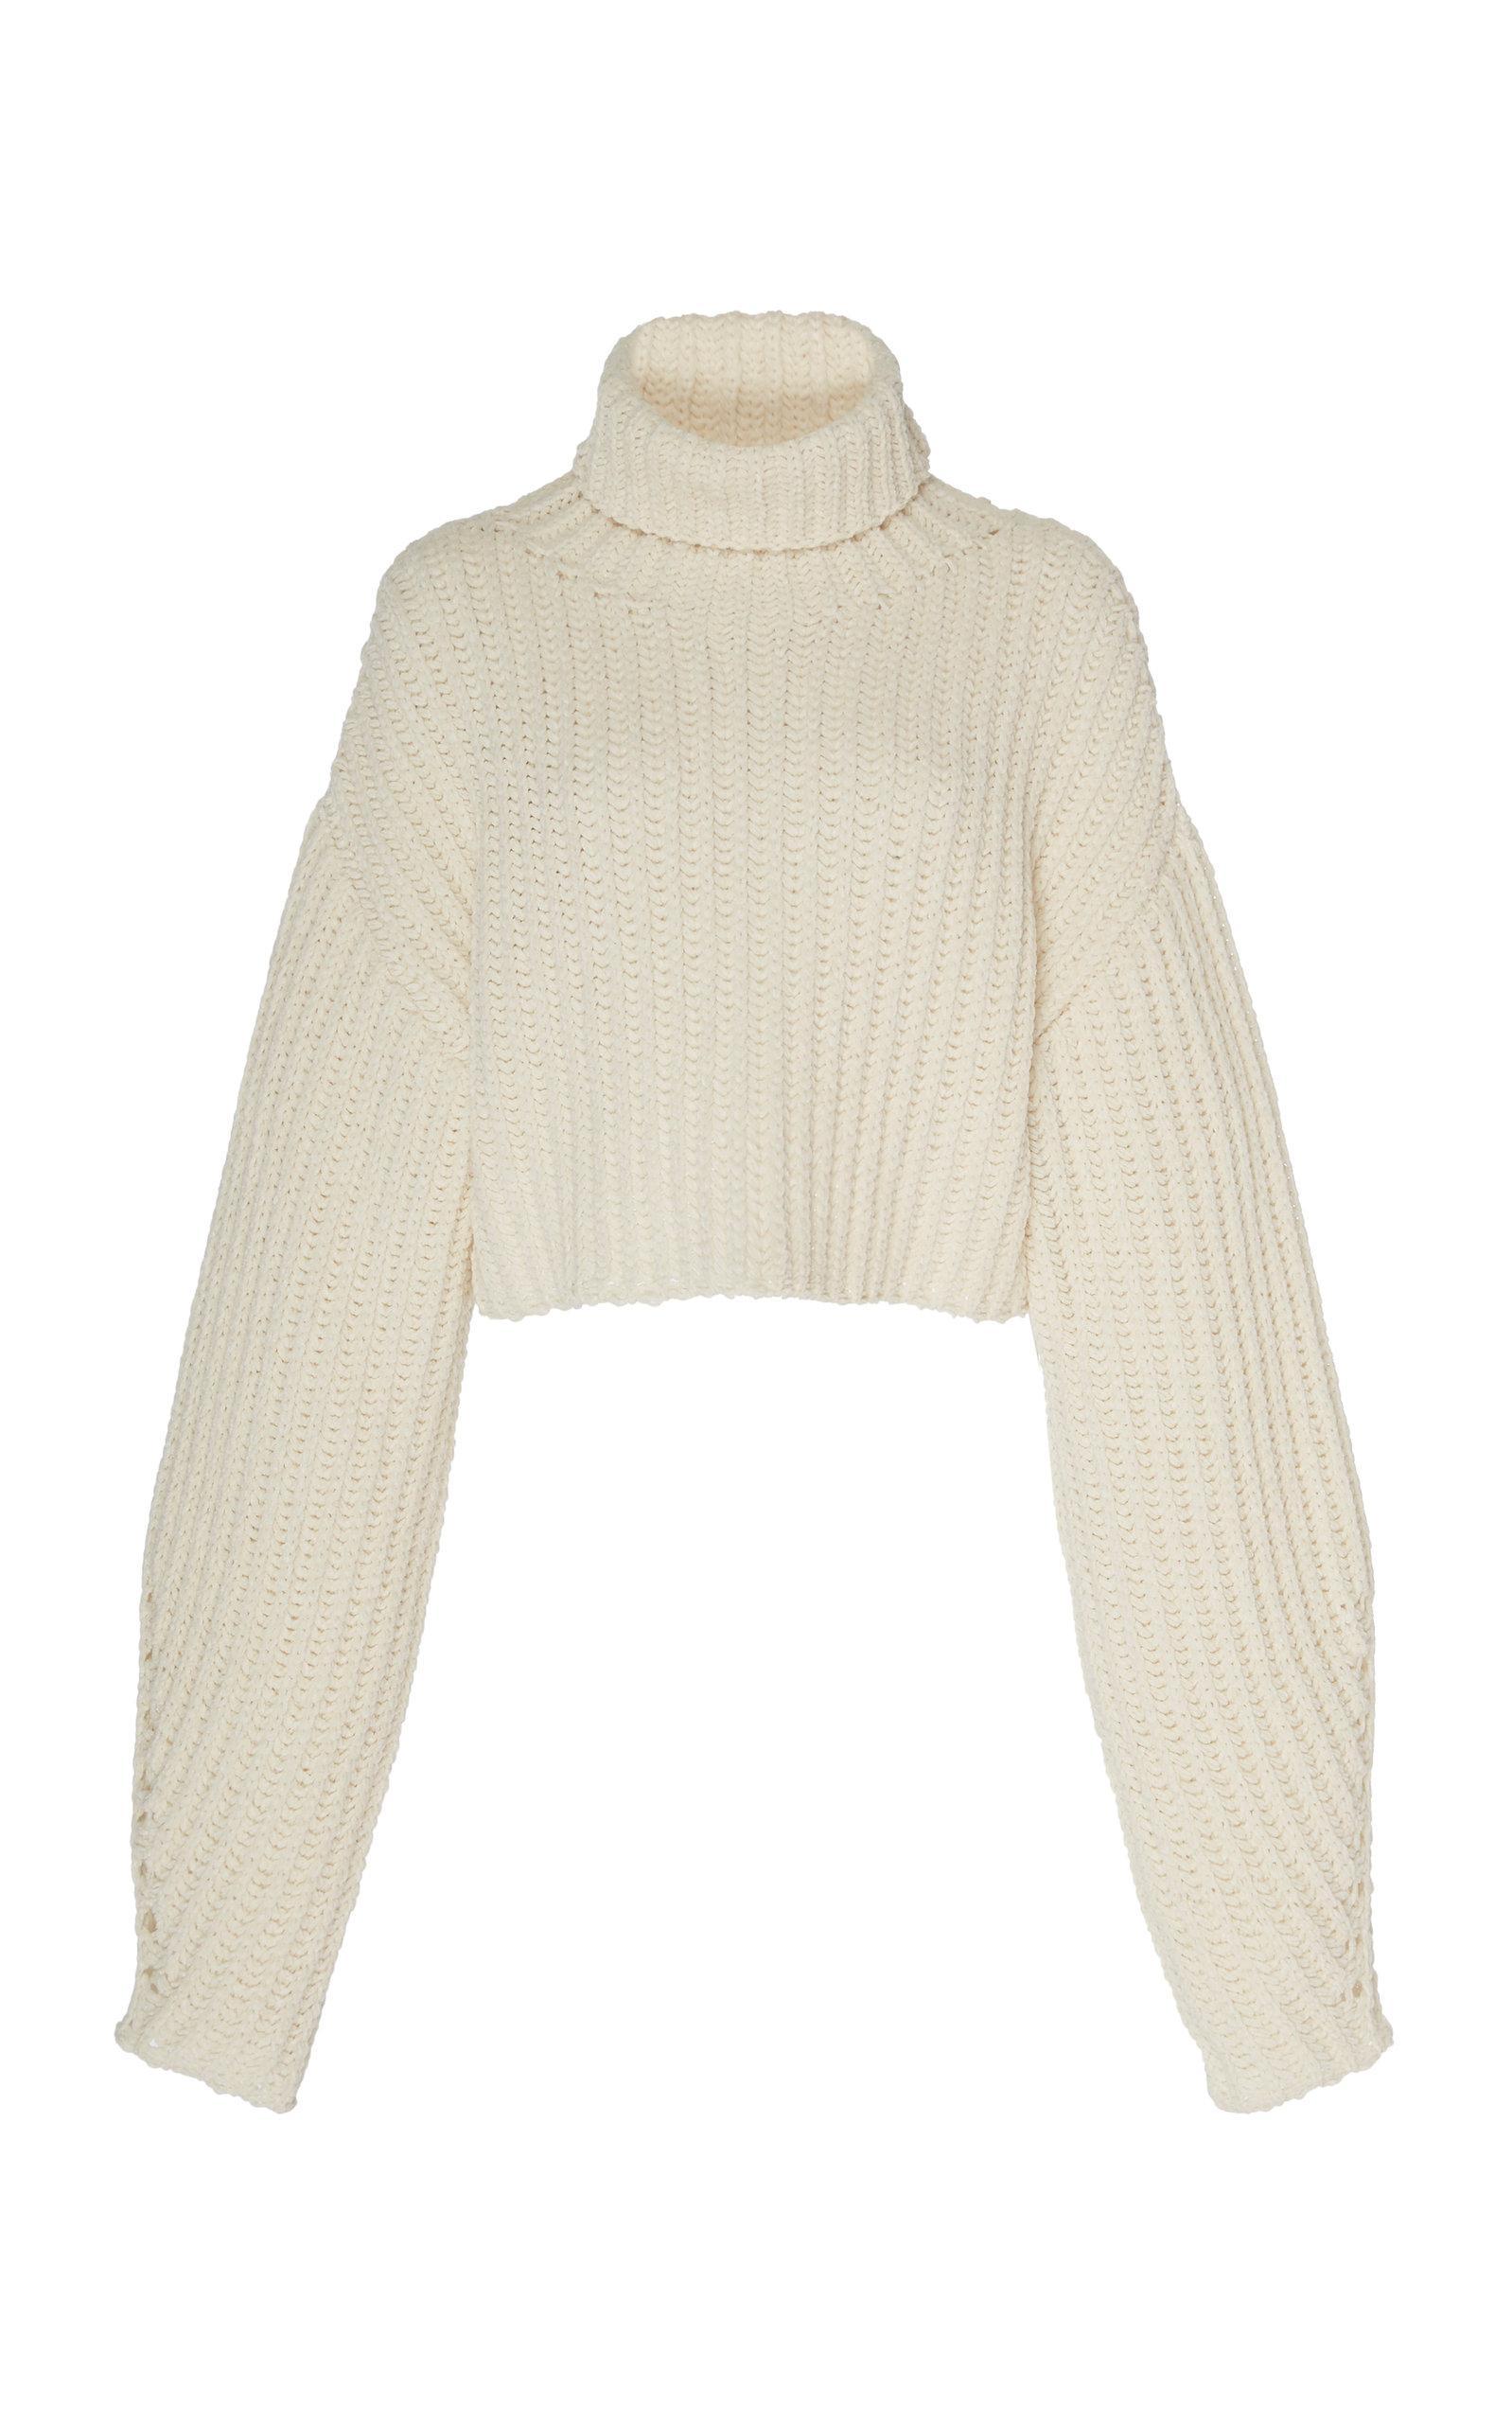 67c3dbcf0df Sally Lapointe Silk Cashmere Cord Cropped High Neck Sweater - Lyst